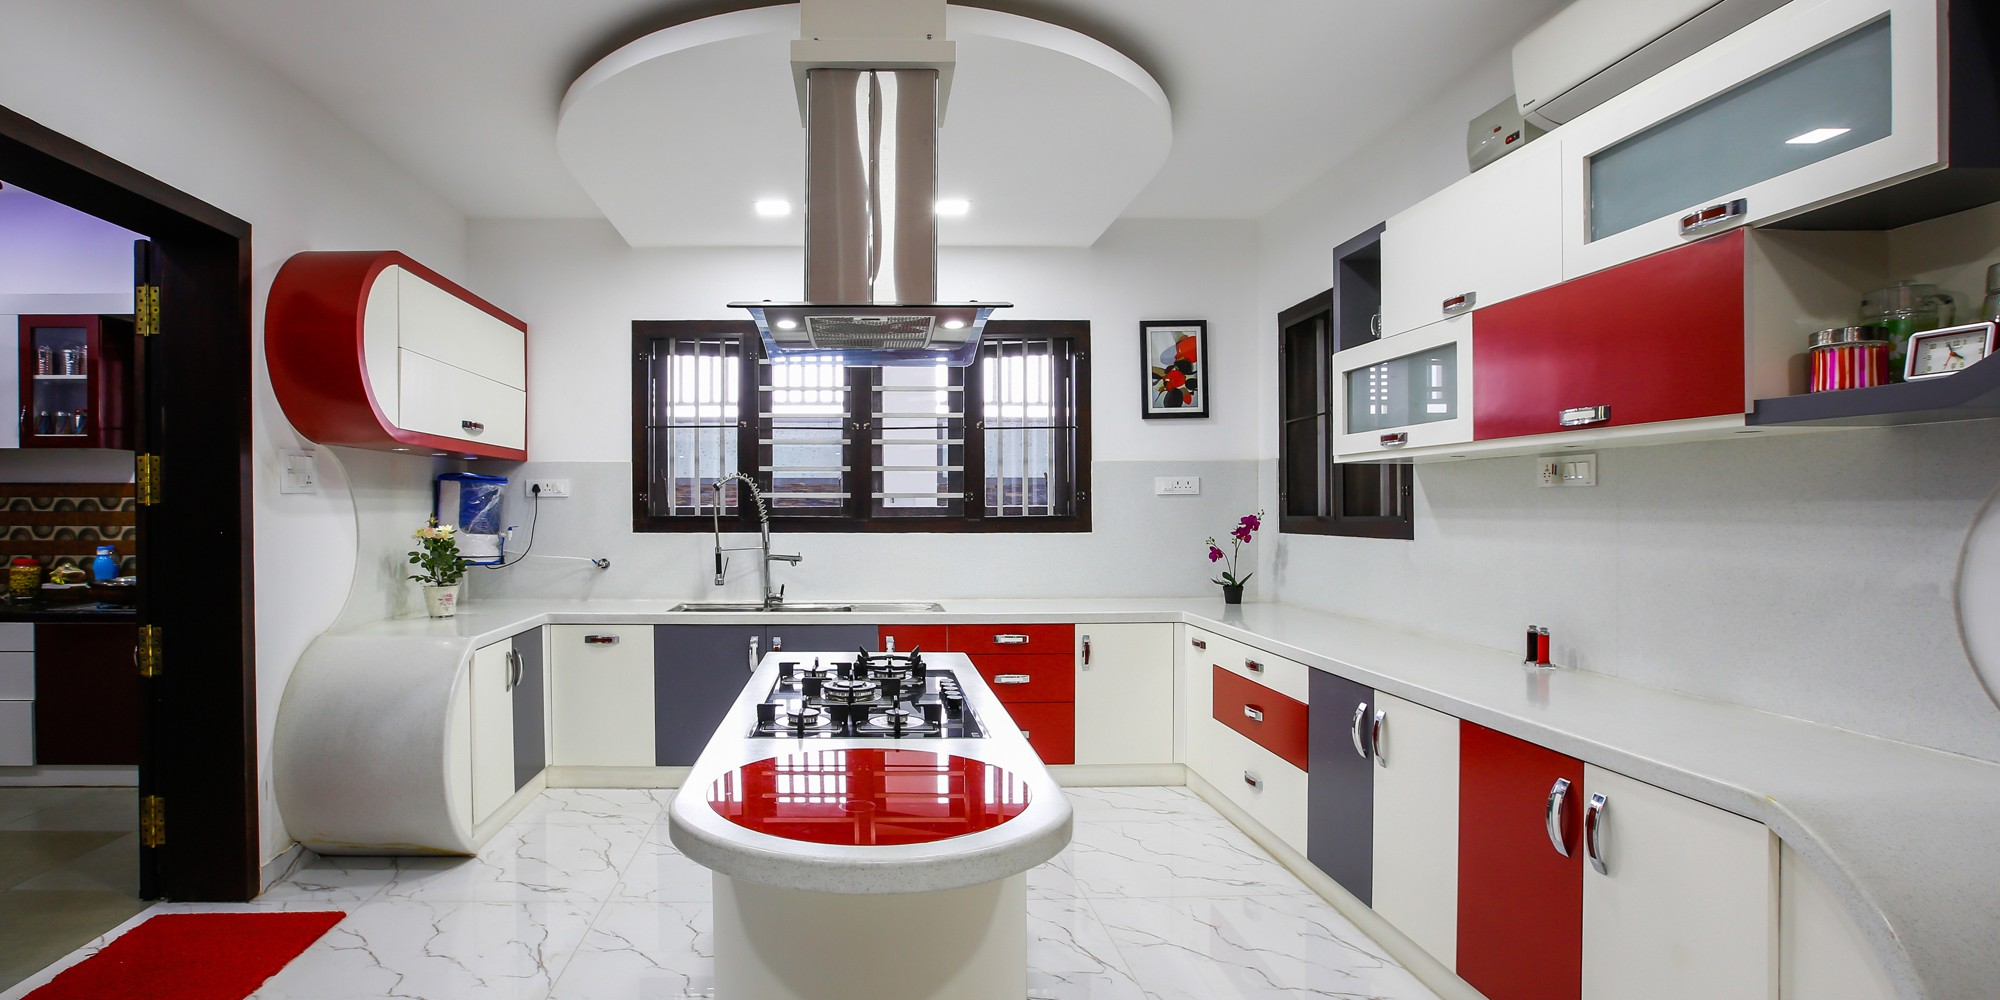 Why Modular Kitchen Designs In Kerala Interior Concepts Are The New Trend By Monnaie Architects Interiors Medium